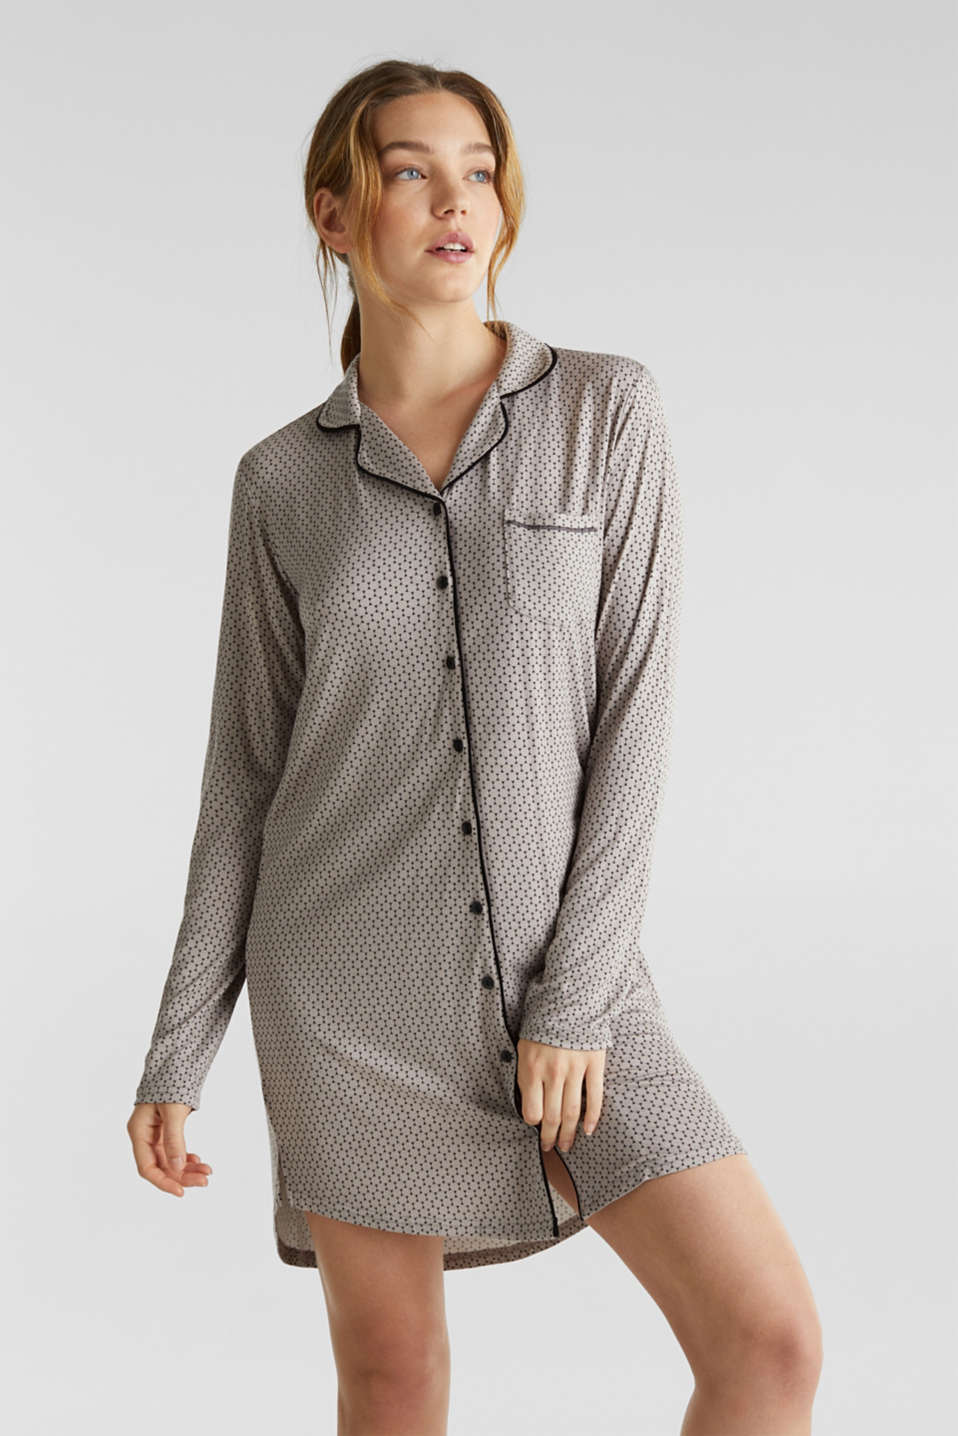 Stretch jersey nightshirt with a graphic print, LIGHT TAUPE, detail image number 0